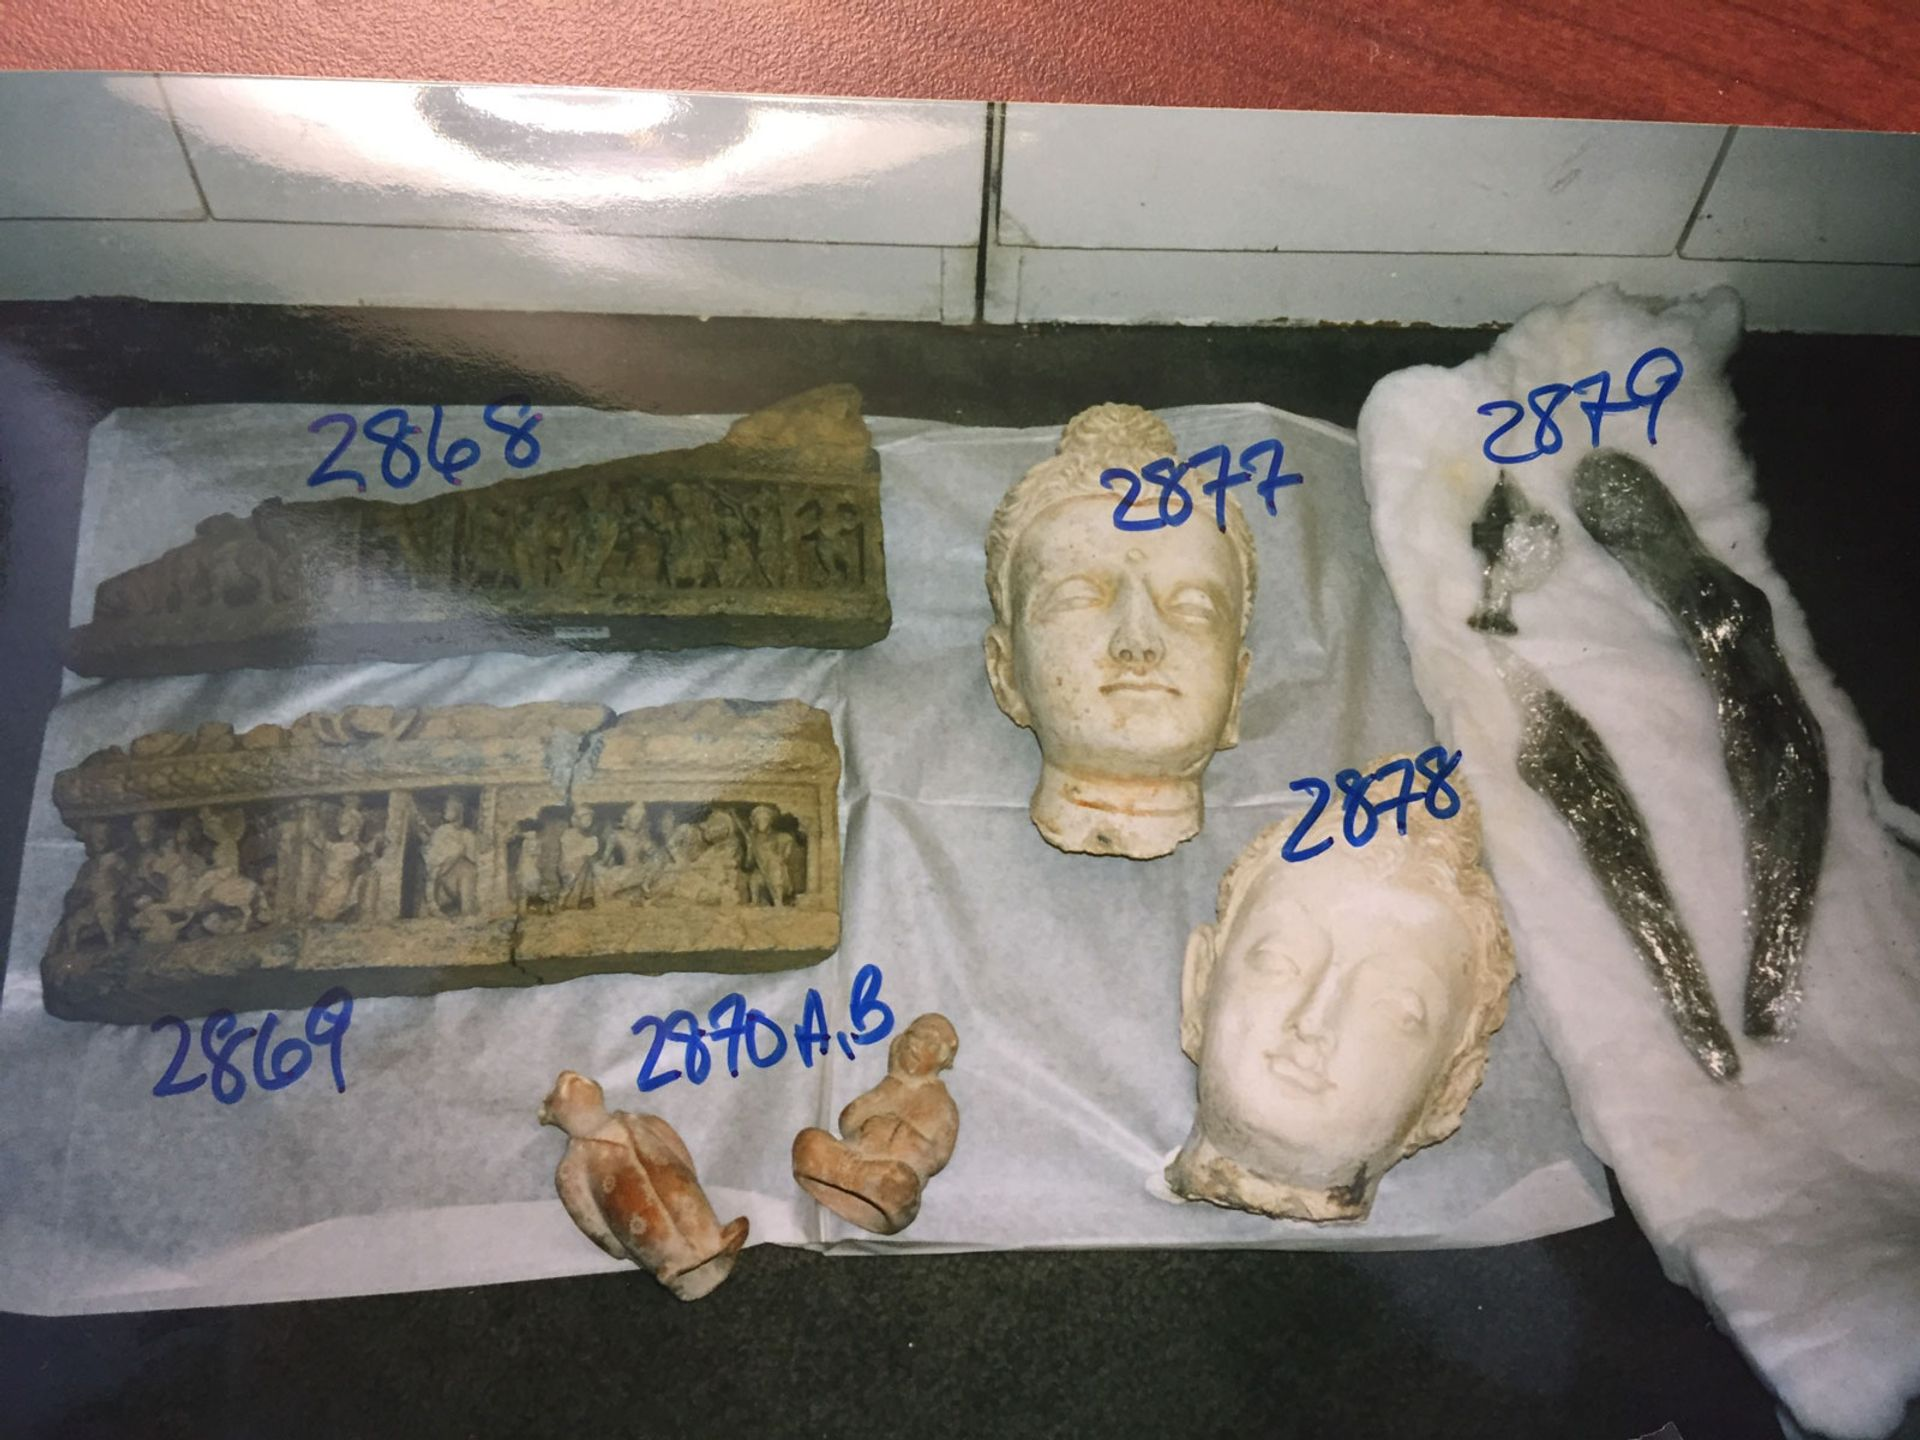 Among the objects seized by US authorities from storage facilities in New York were two stucco Gandharan Buddha heads that were excavated from Afghanistan after paying off a Mujahedeen commander who controlled the area